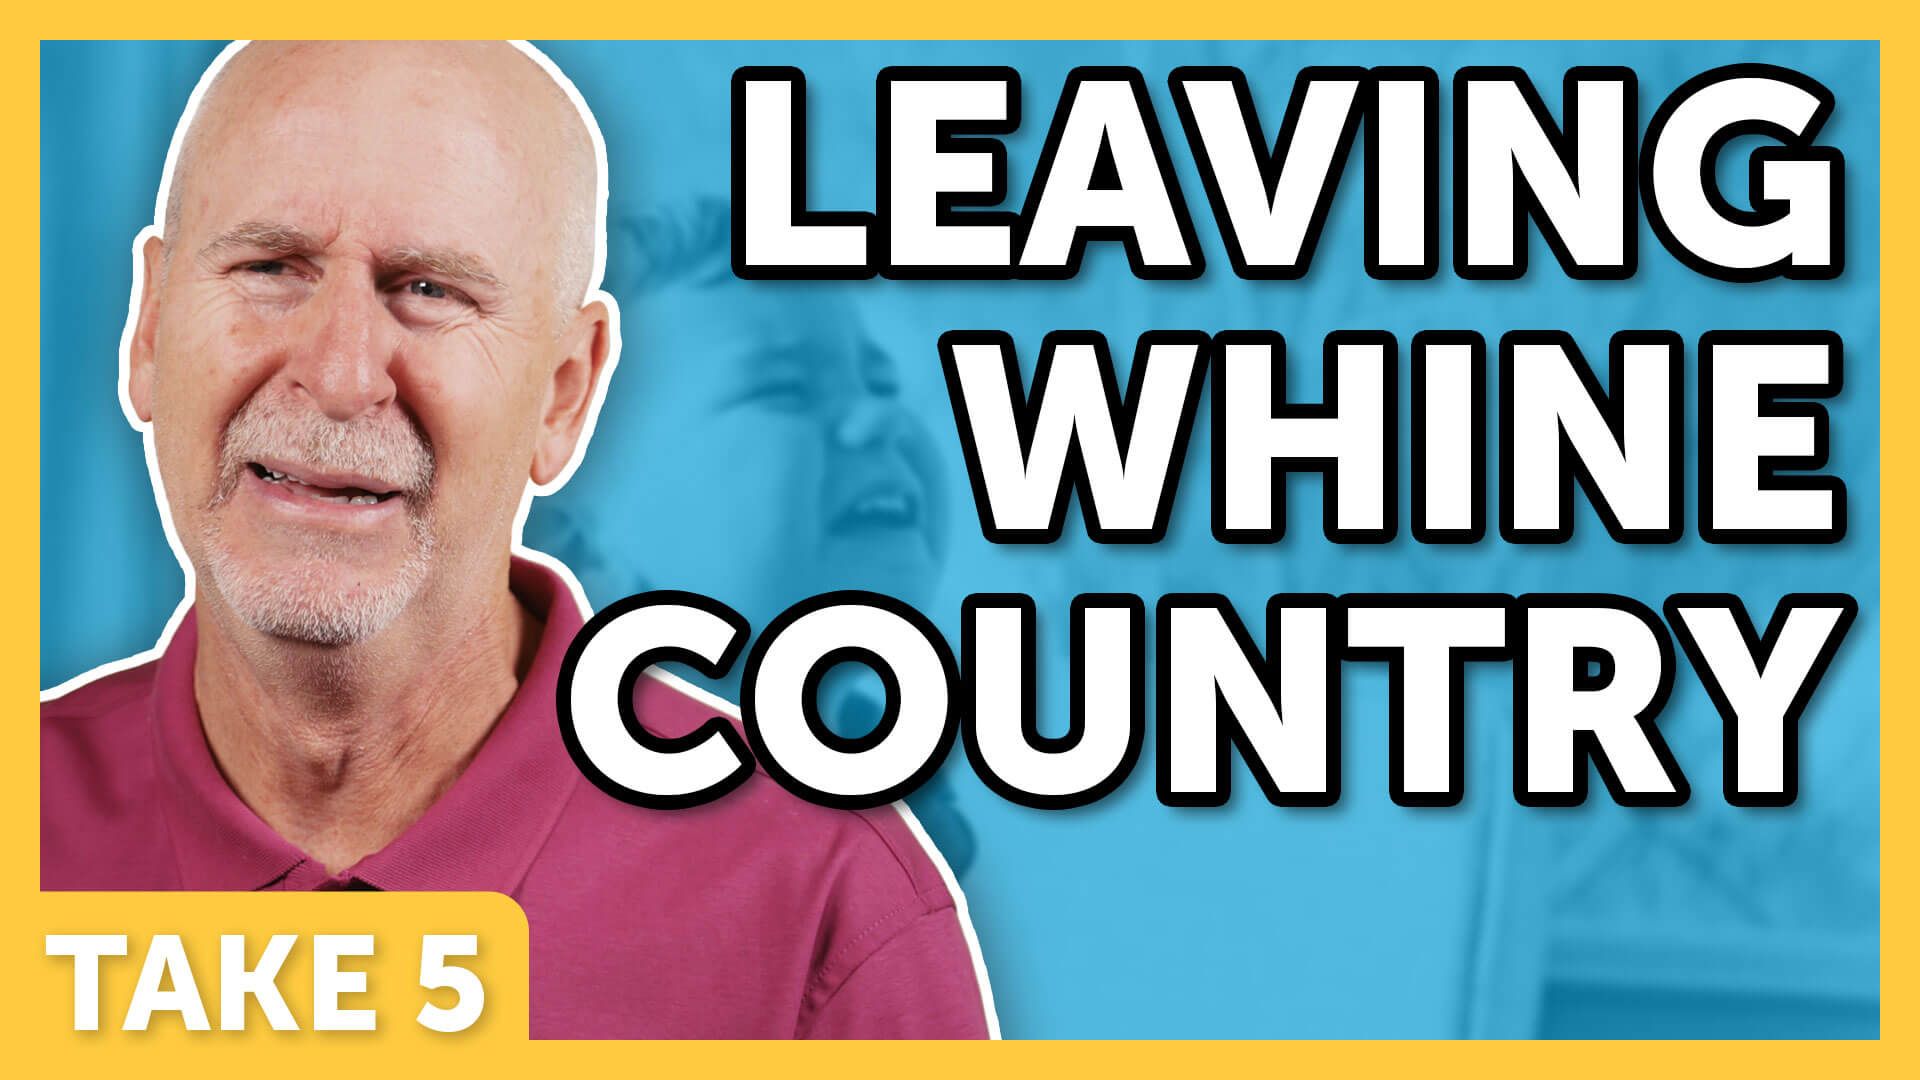 Leaving Whine Country - Laugh Again Take 5 with Phil Callaway | Laugh Again TV